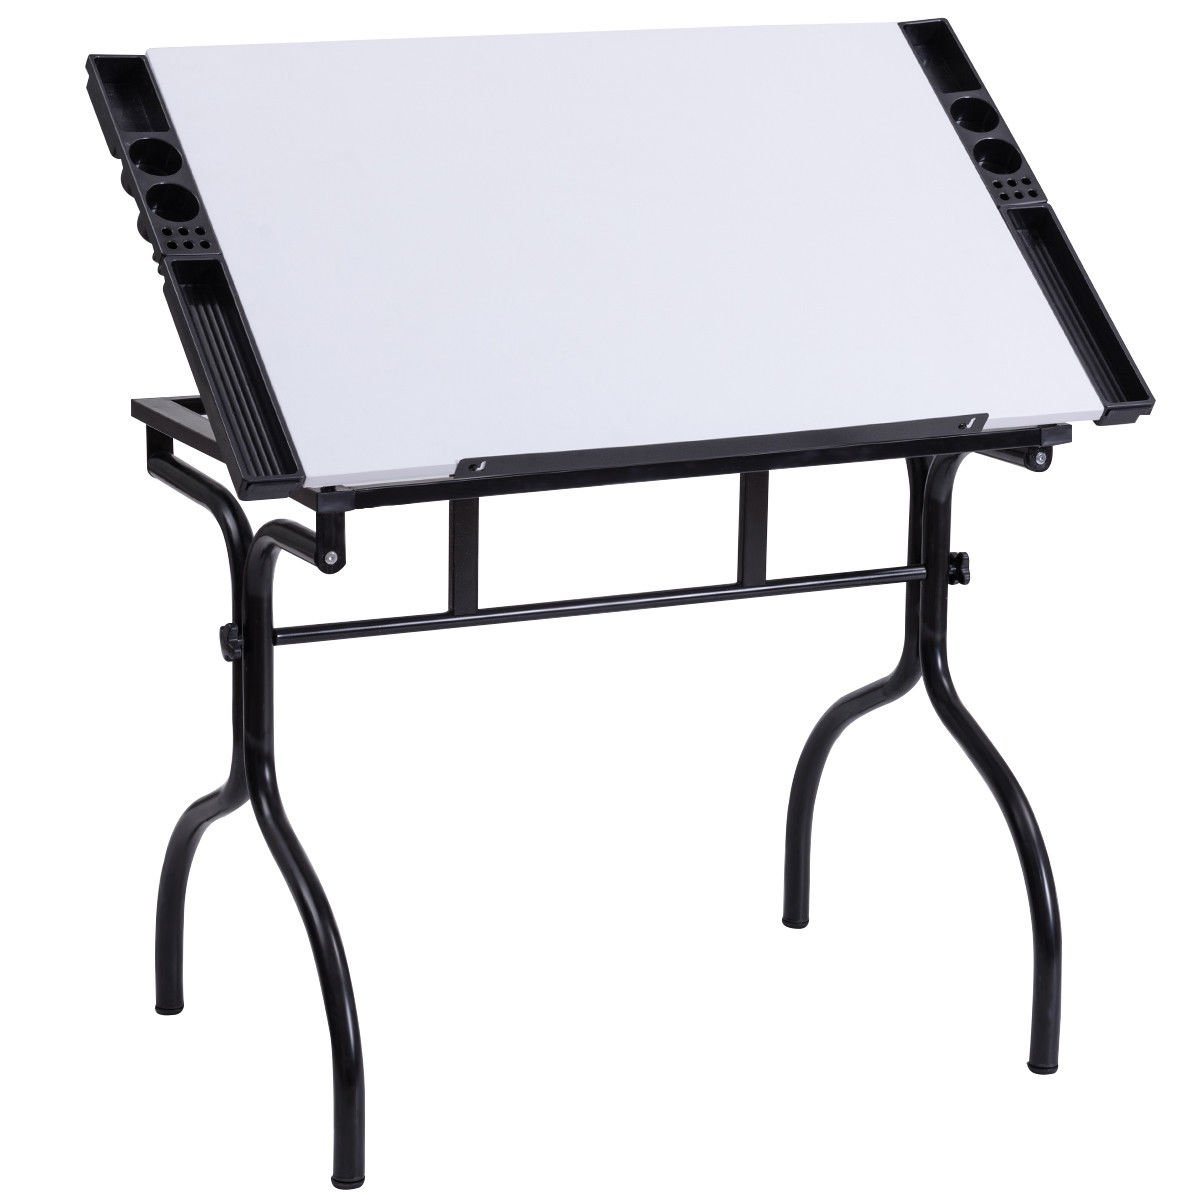 COLIBROX--Drafting Table Drawing Desk Adjustable Folding Craft Station Art Hobby White New. best professional drafting table. standing drafting table amazon. drafting table with parallel bar.